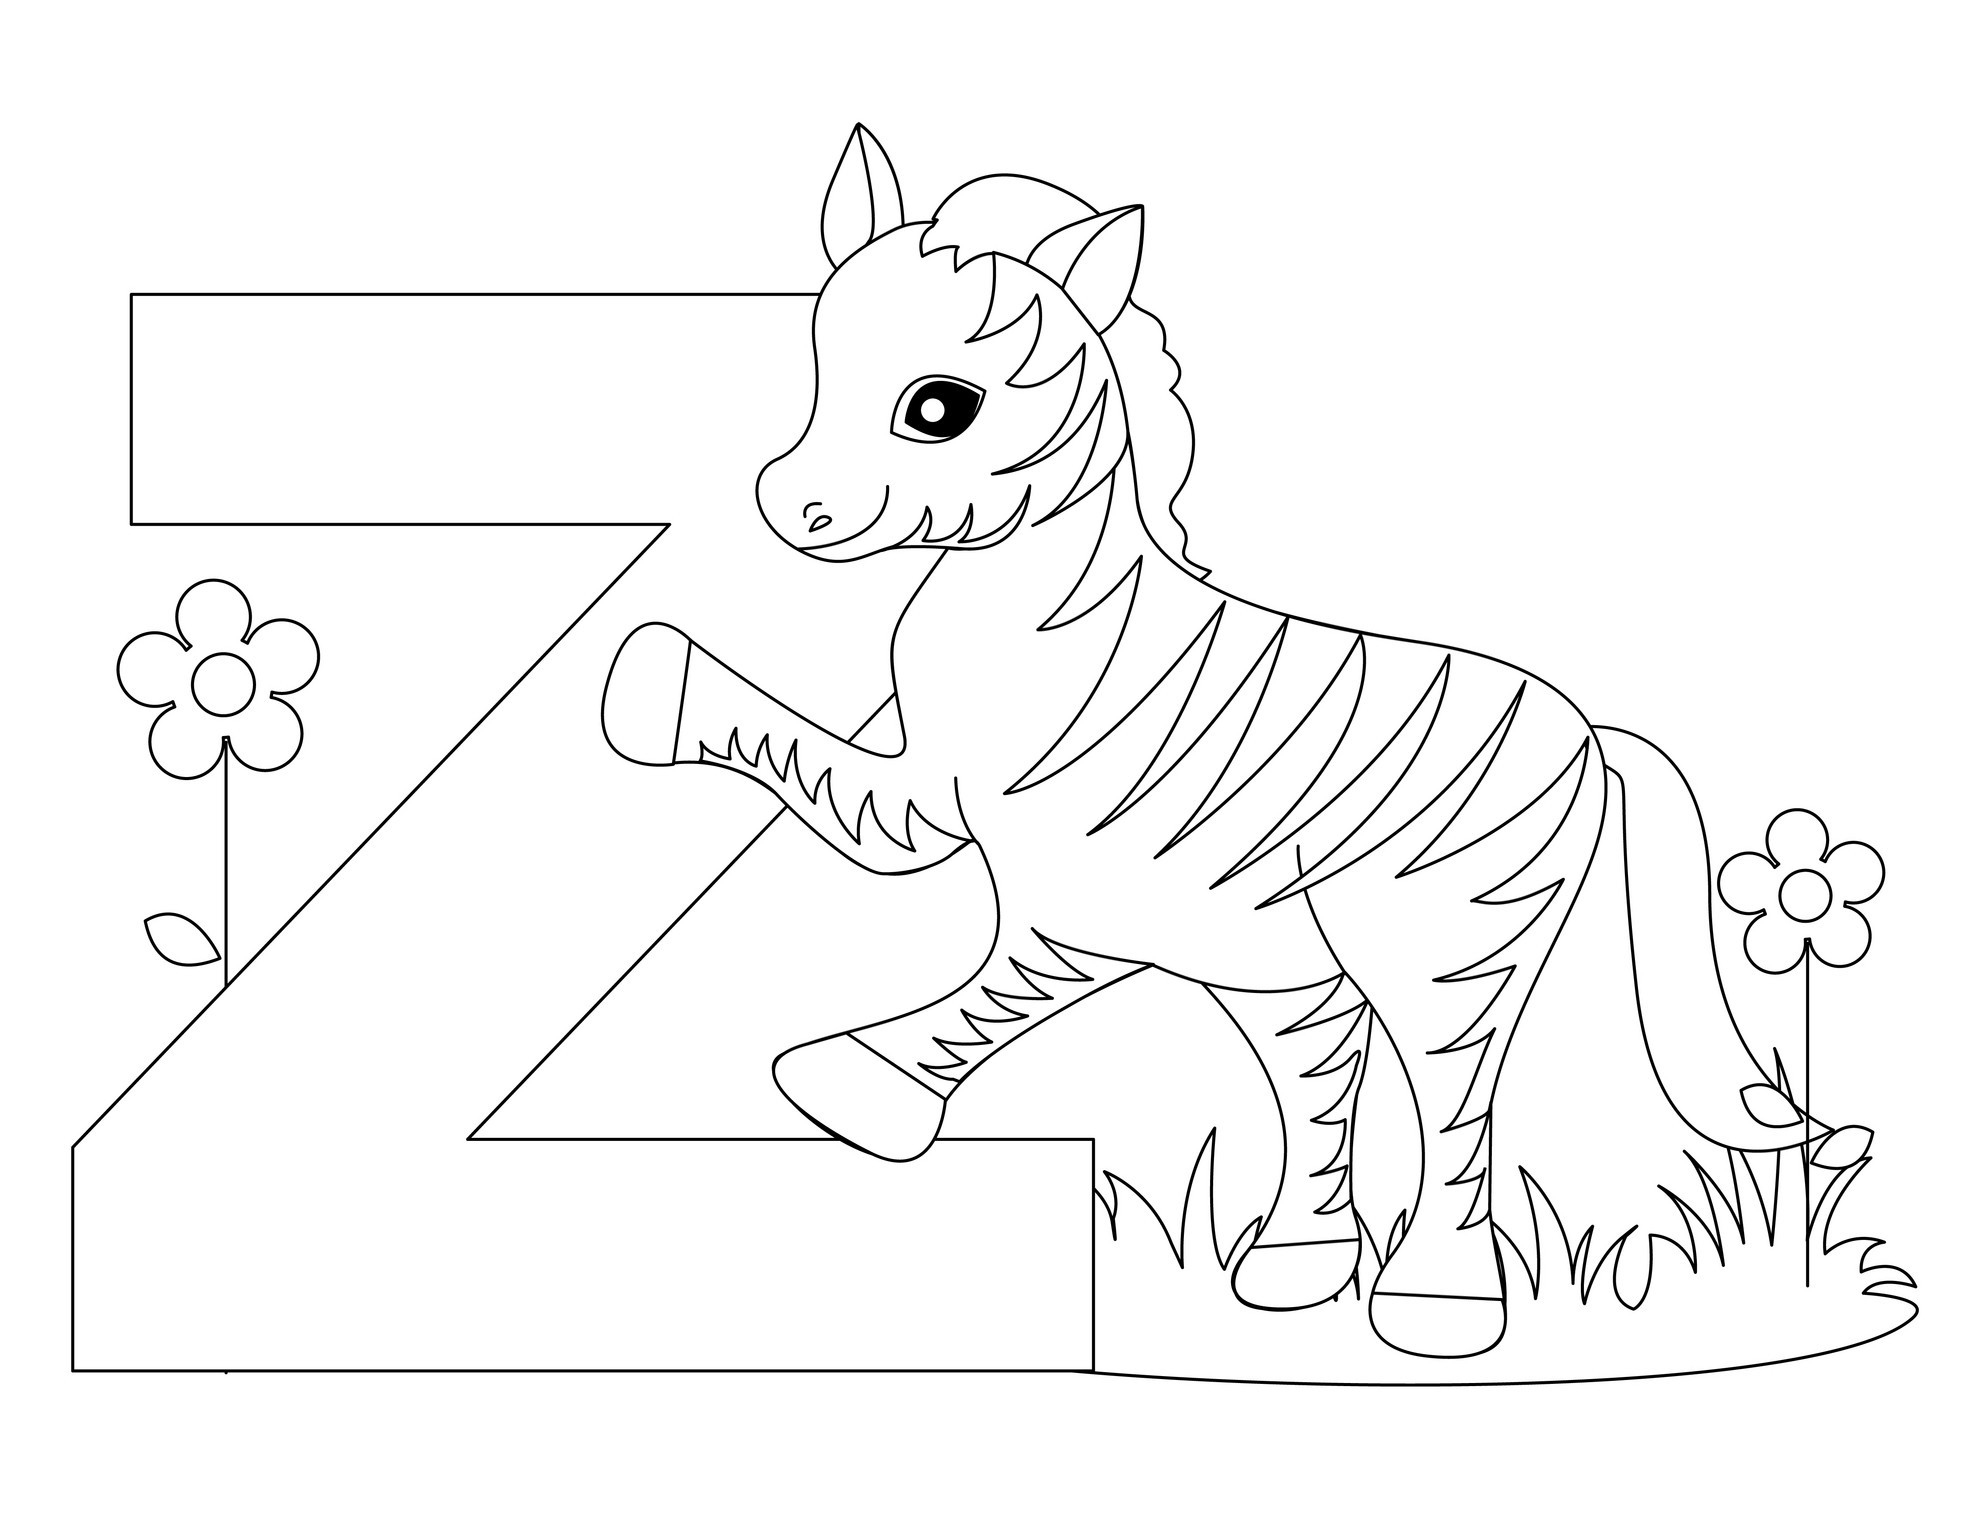 Coloring Pages Animals Letters : Free printable alphabet coloring pages for kids best